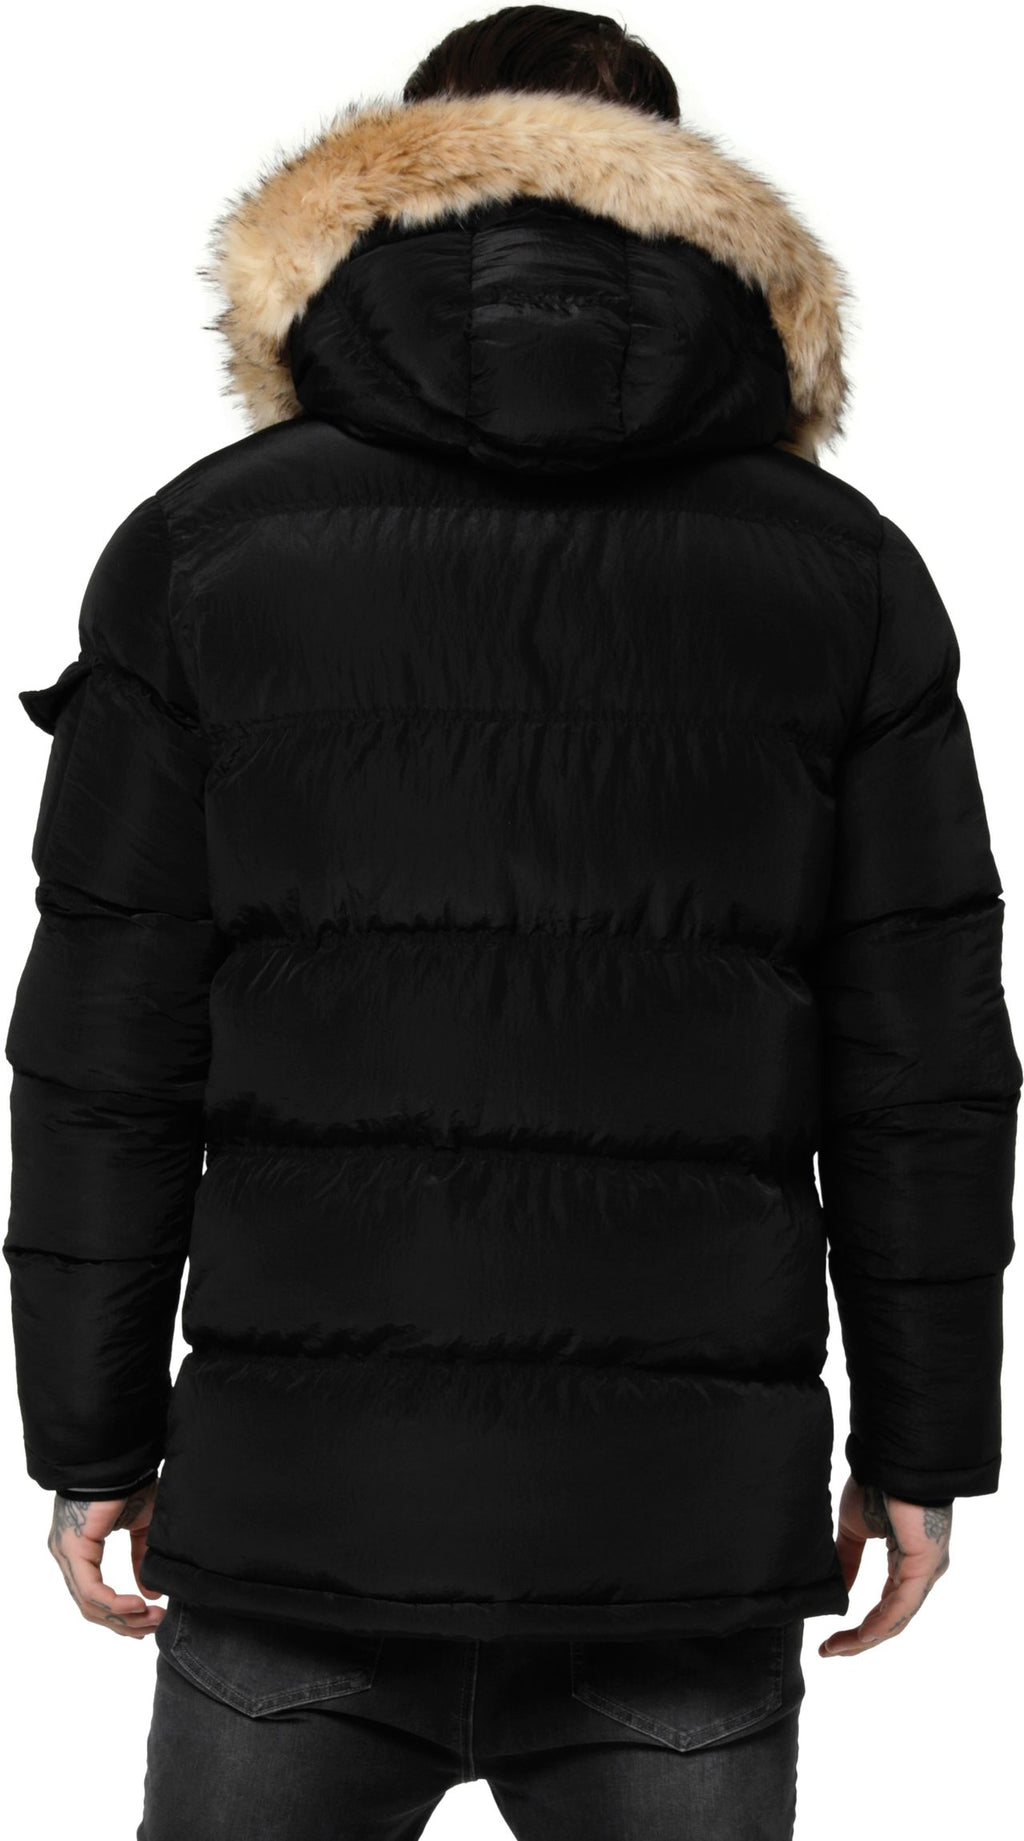 Sik Silk Shiny Puff Parka Jacket Black